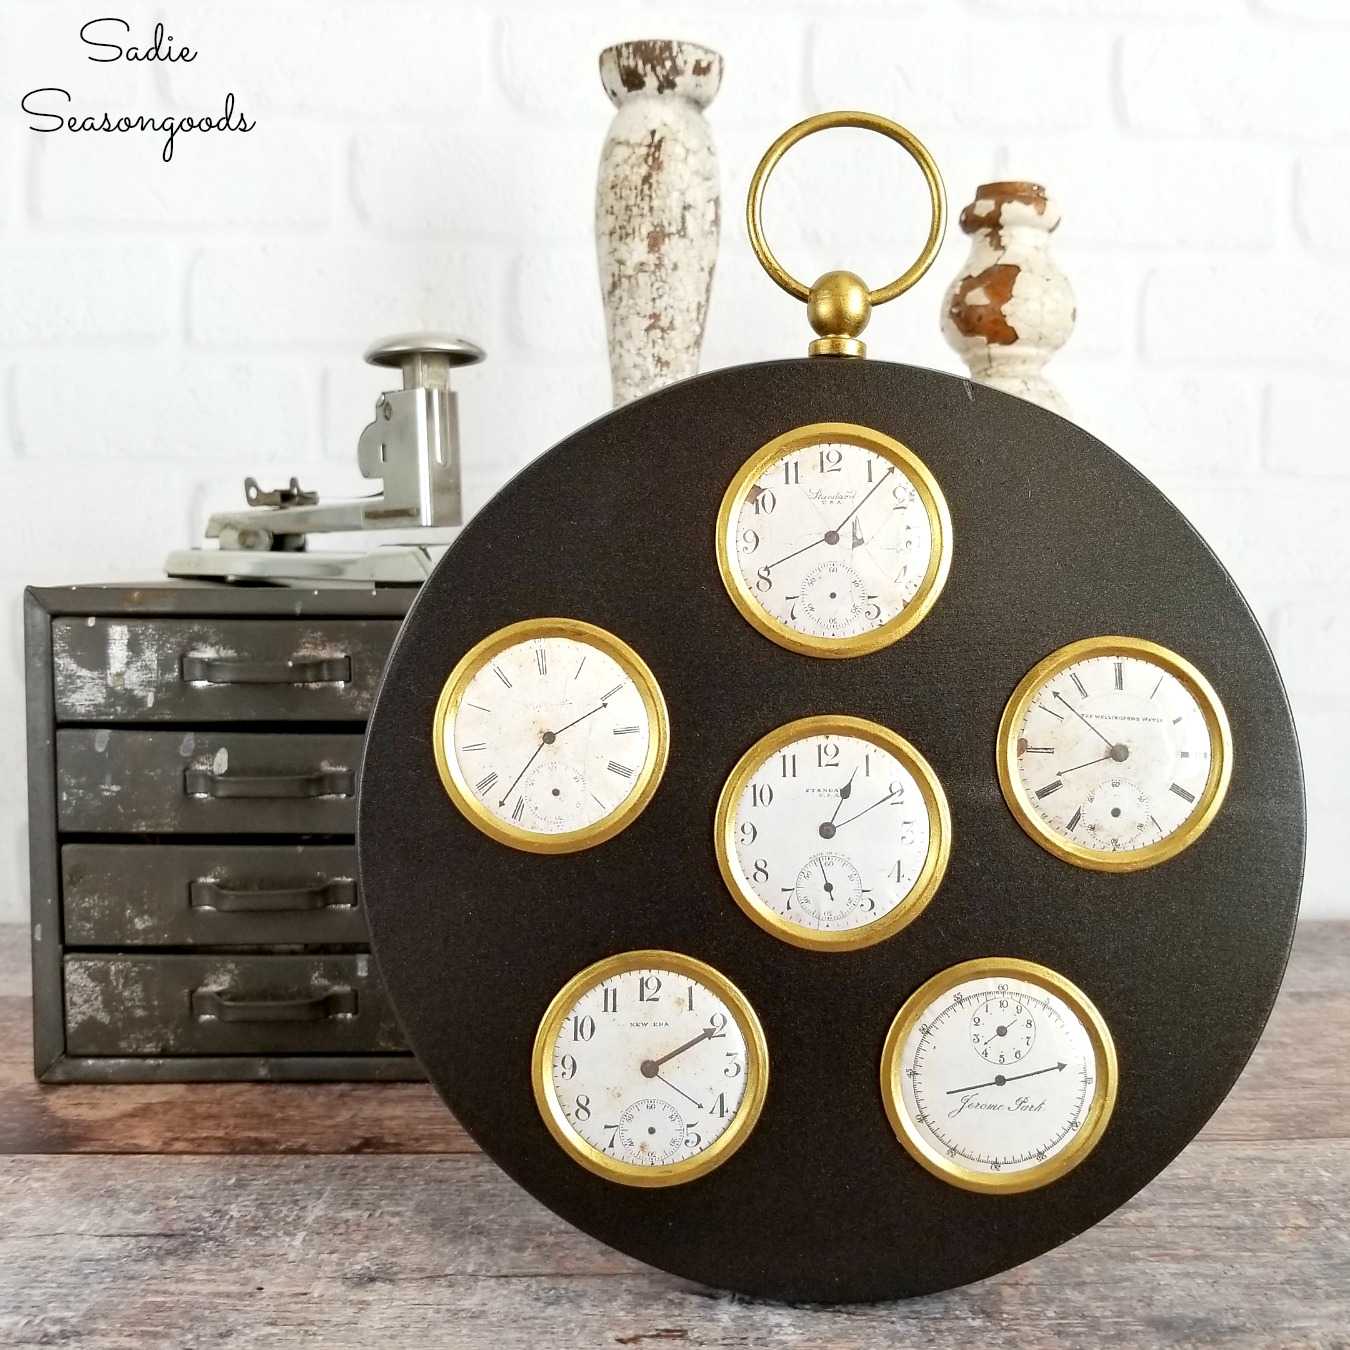 Steampunk Decor from a Multi Photo Frame